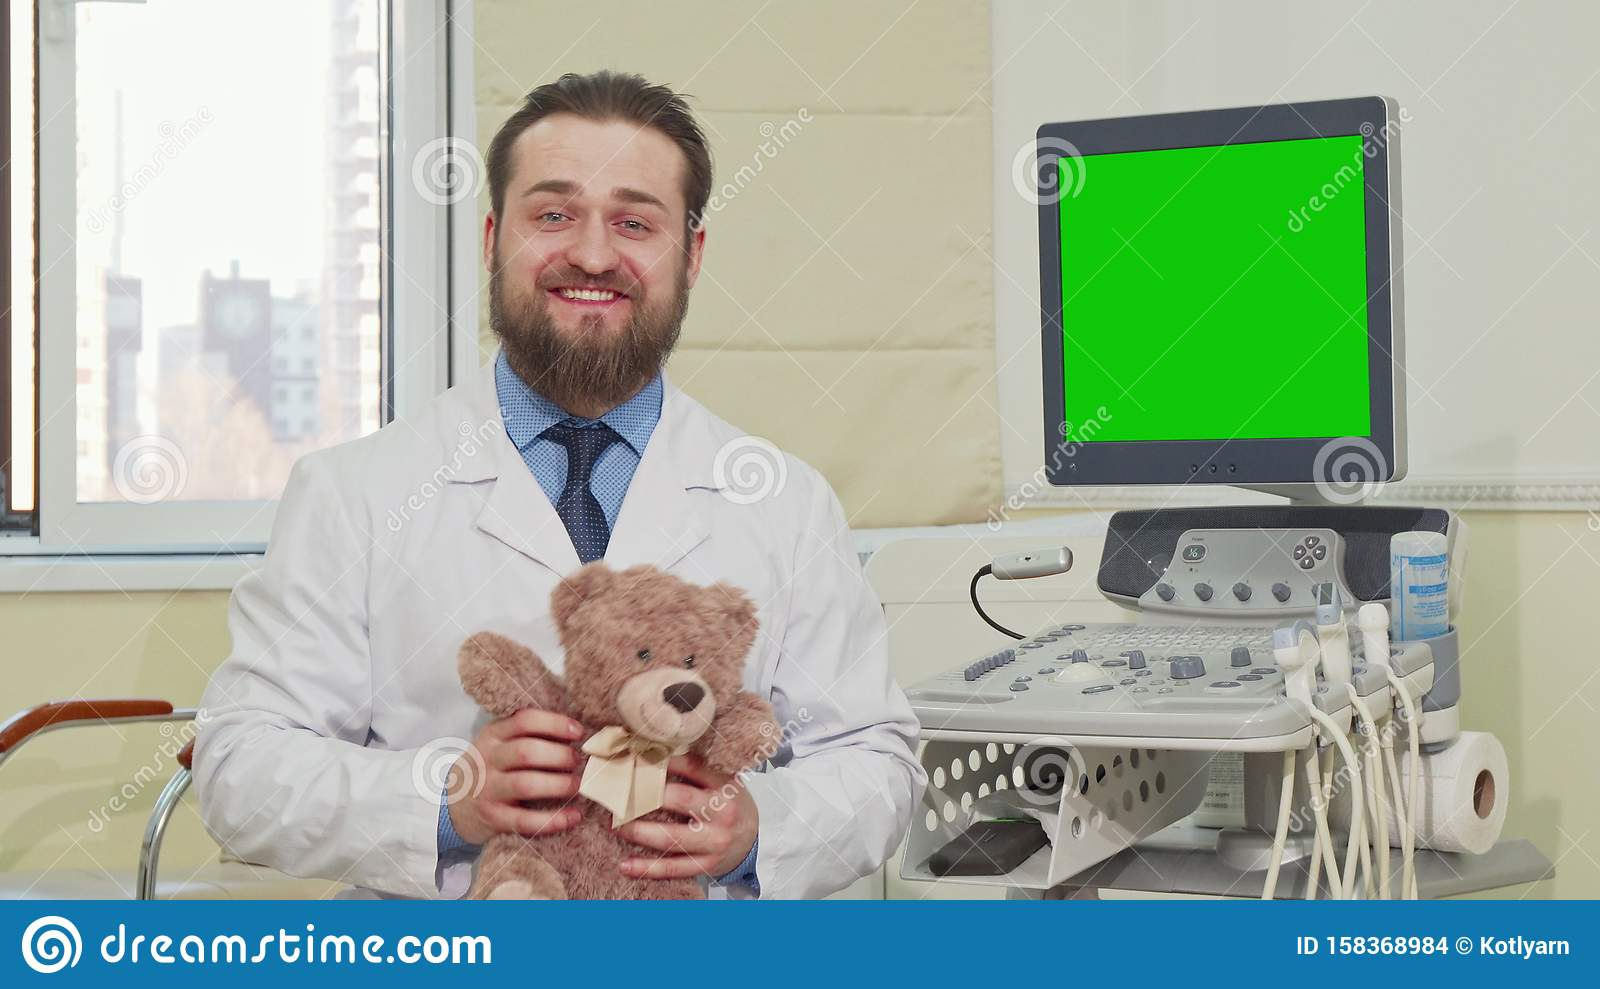 Pediatrician holding teddy bear, ultrasound scanner with green screen on the back